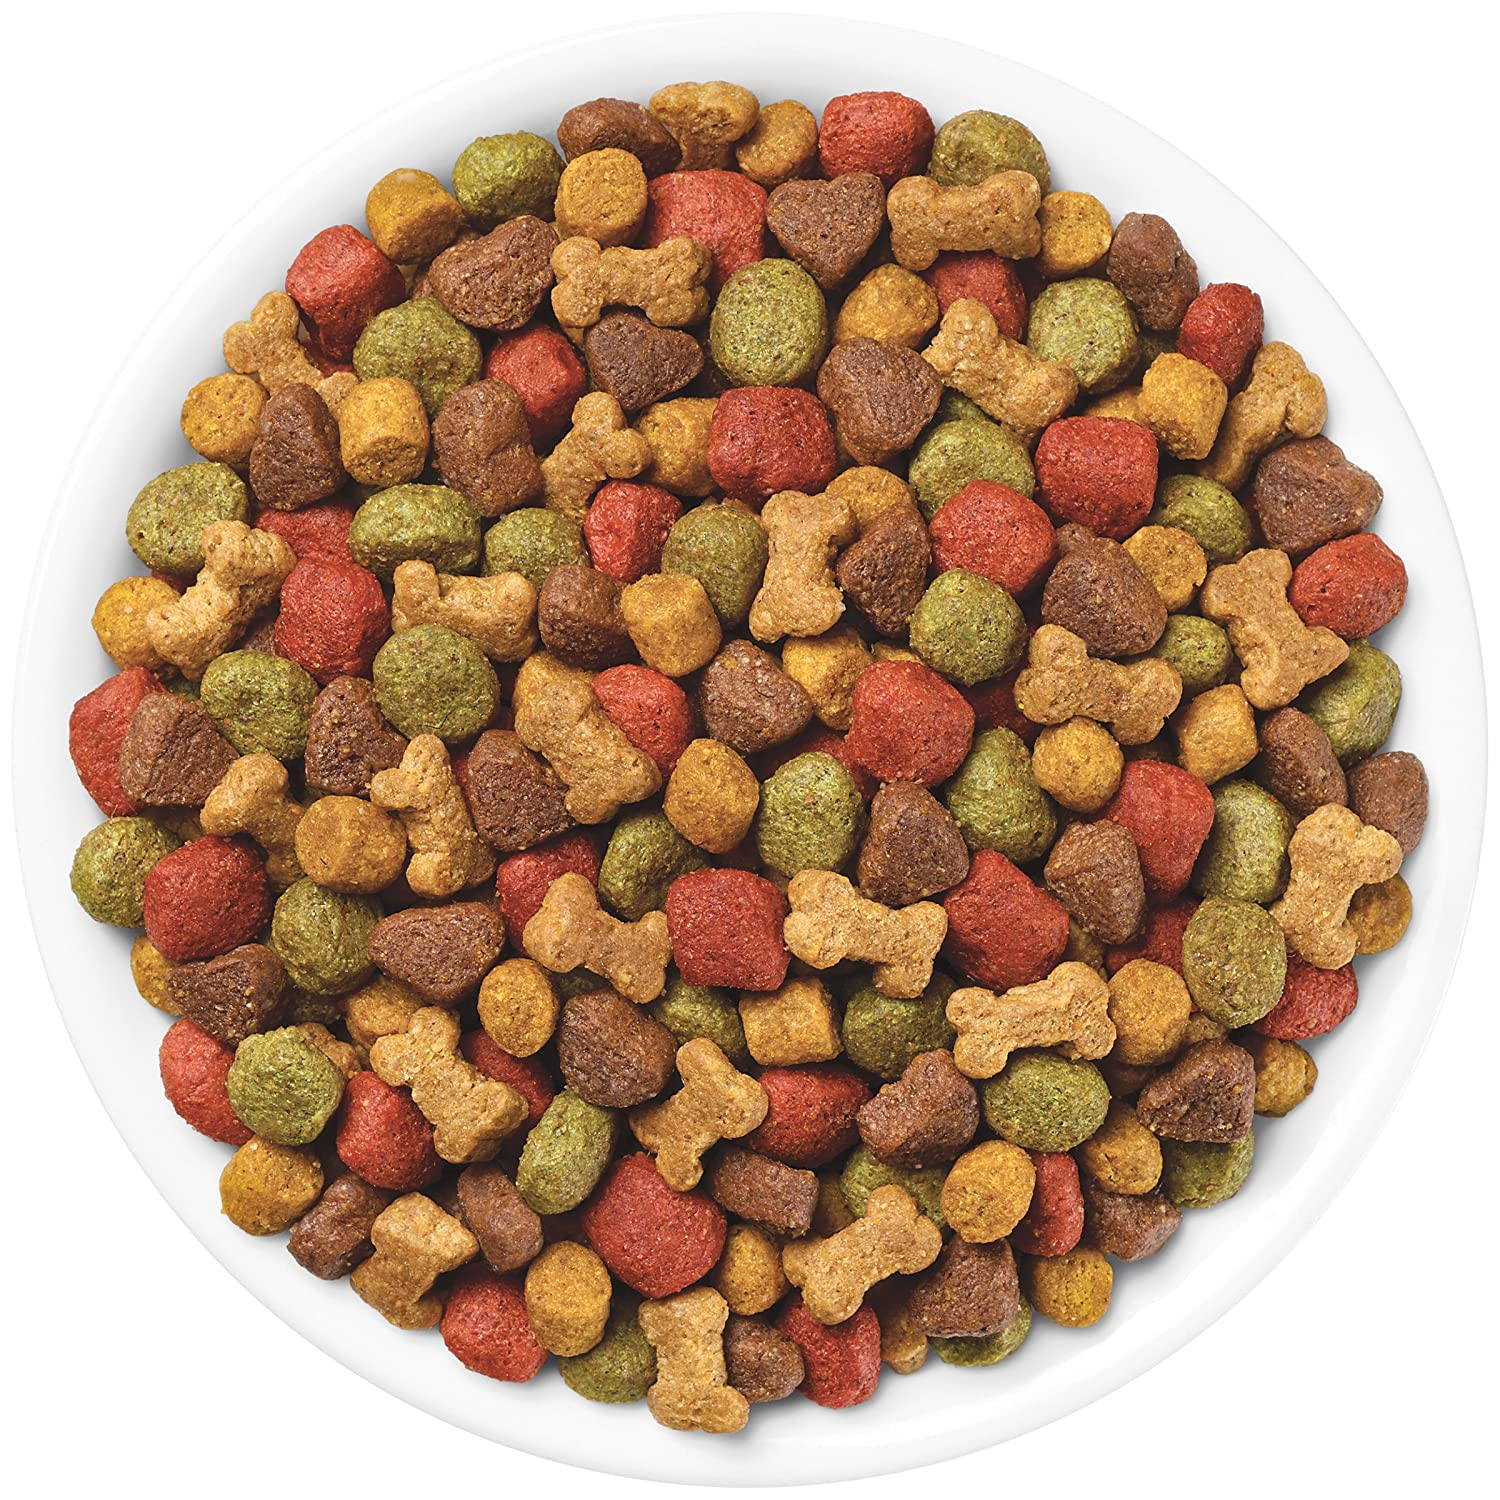 Amazon purina puppy chow tender and crunchy puppy food 36 lb amazon purina puppy chow tender and crunchy puppy food 36 lb bag pet supplies forumfinder Image collections